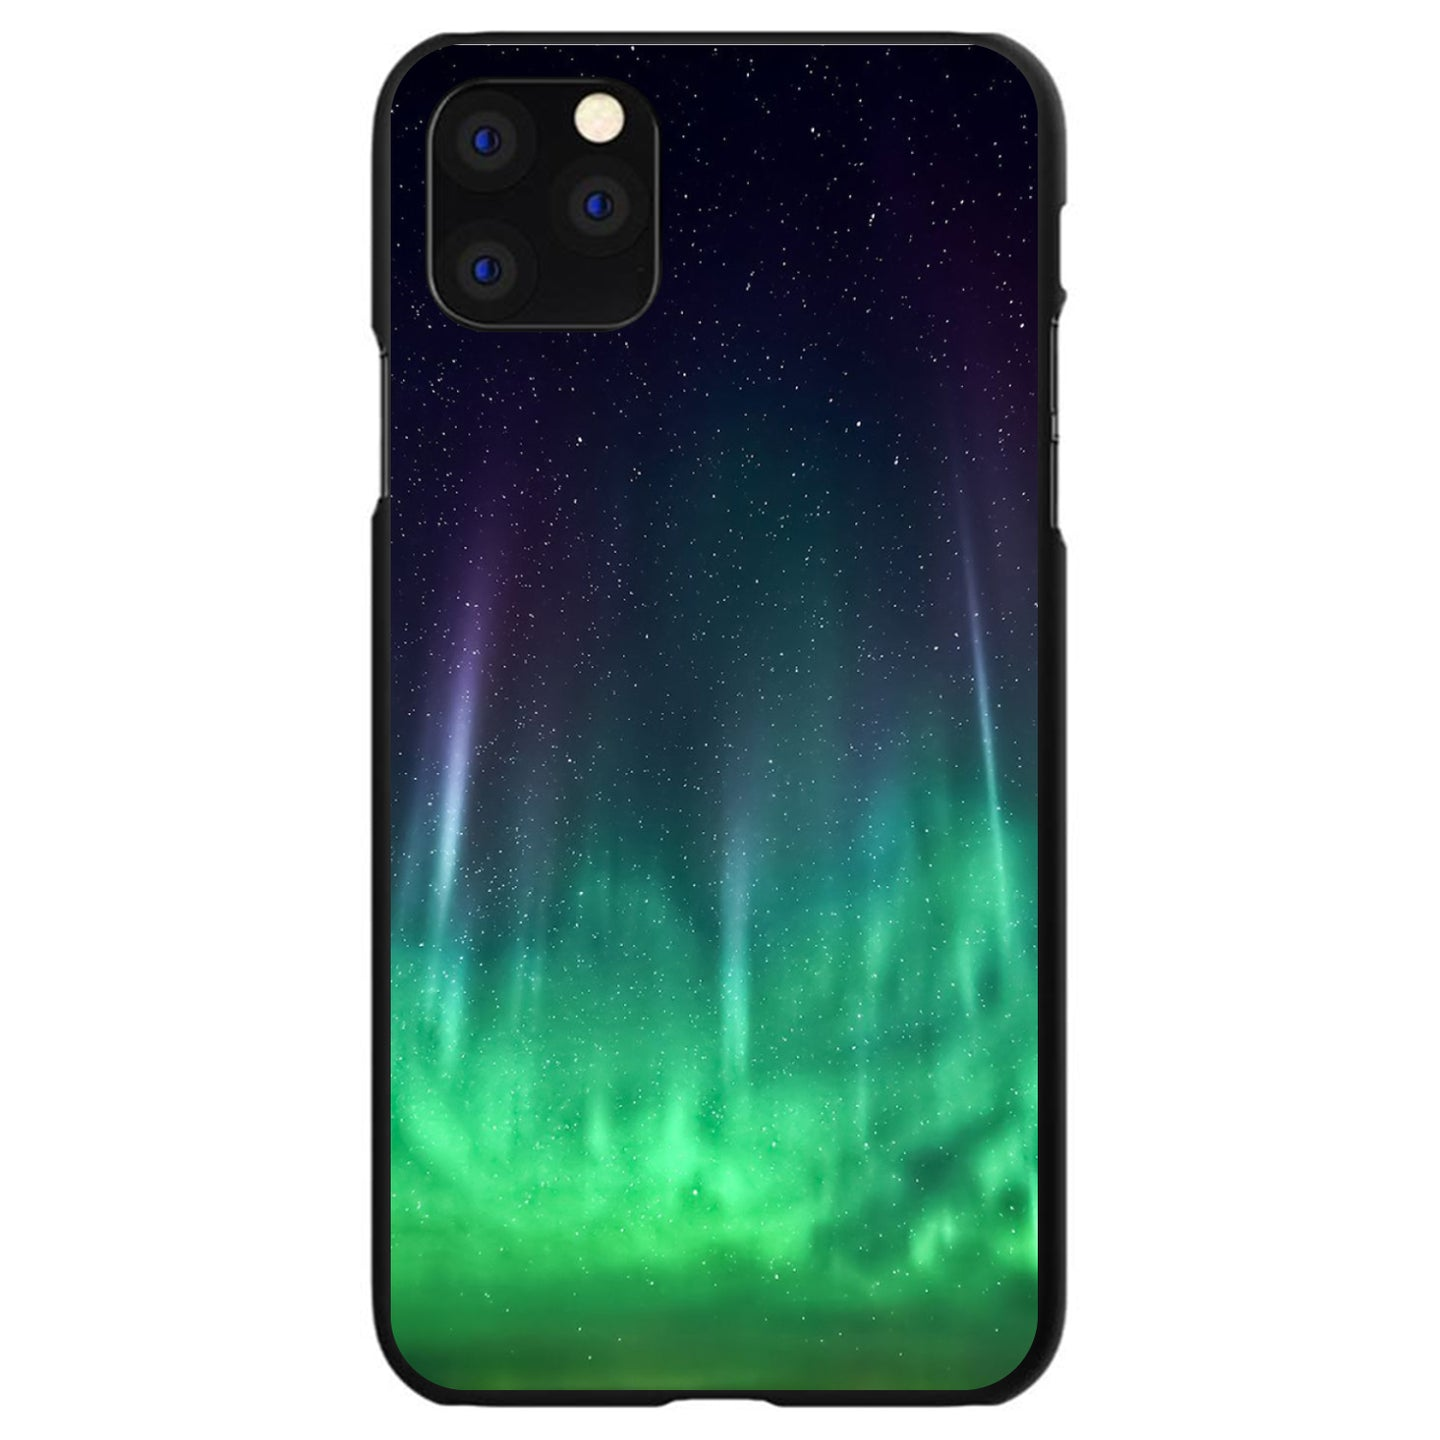 DistinctInk® Hard Plastic Snap-On Case for Apple iPhone - Aurora Borealis Northern Lights